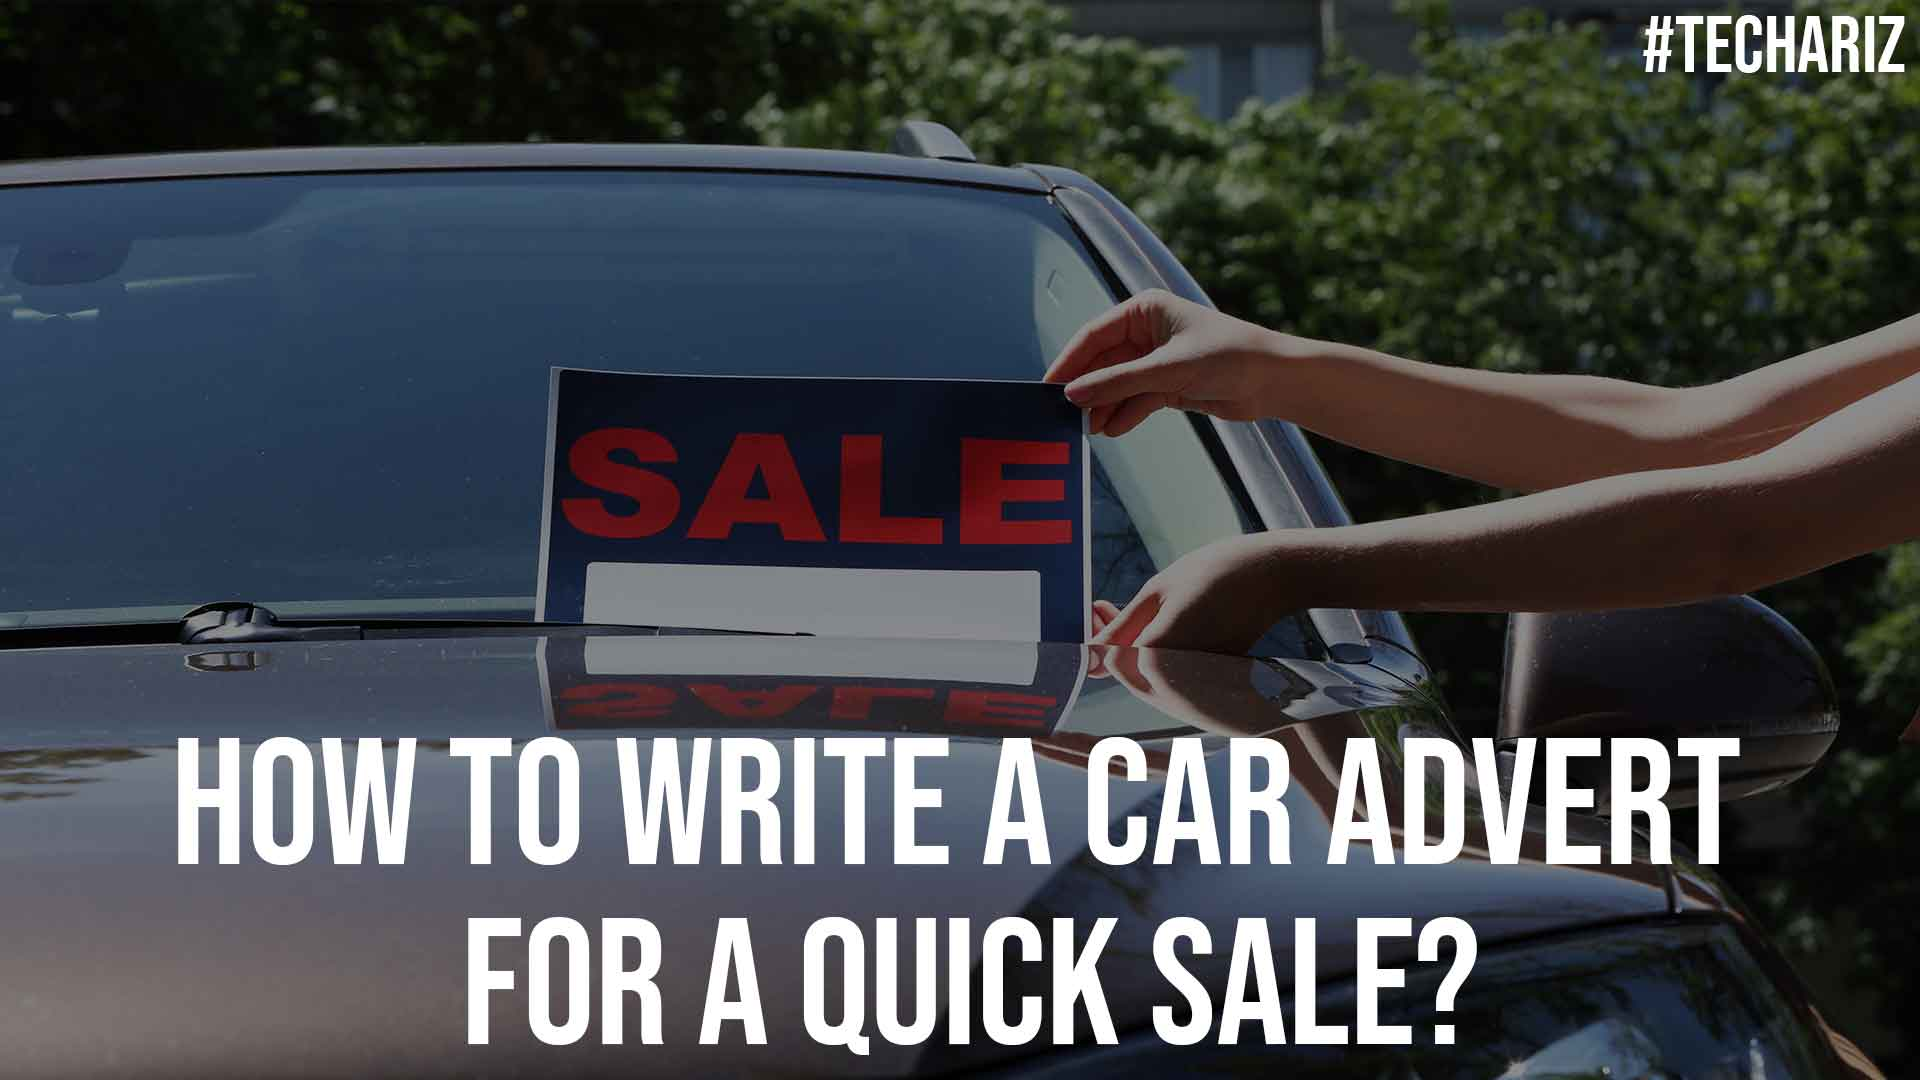 How To Write A Car Advert For A Quick Sale